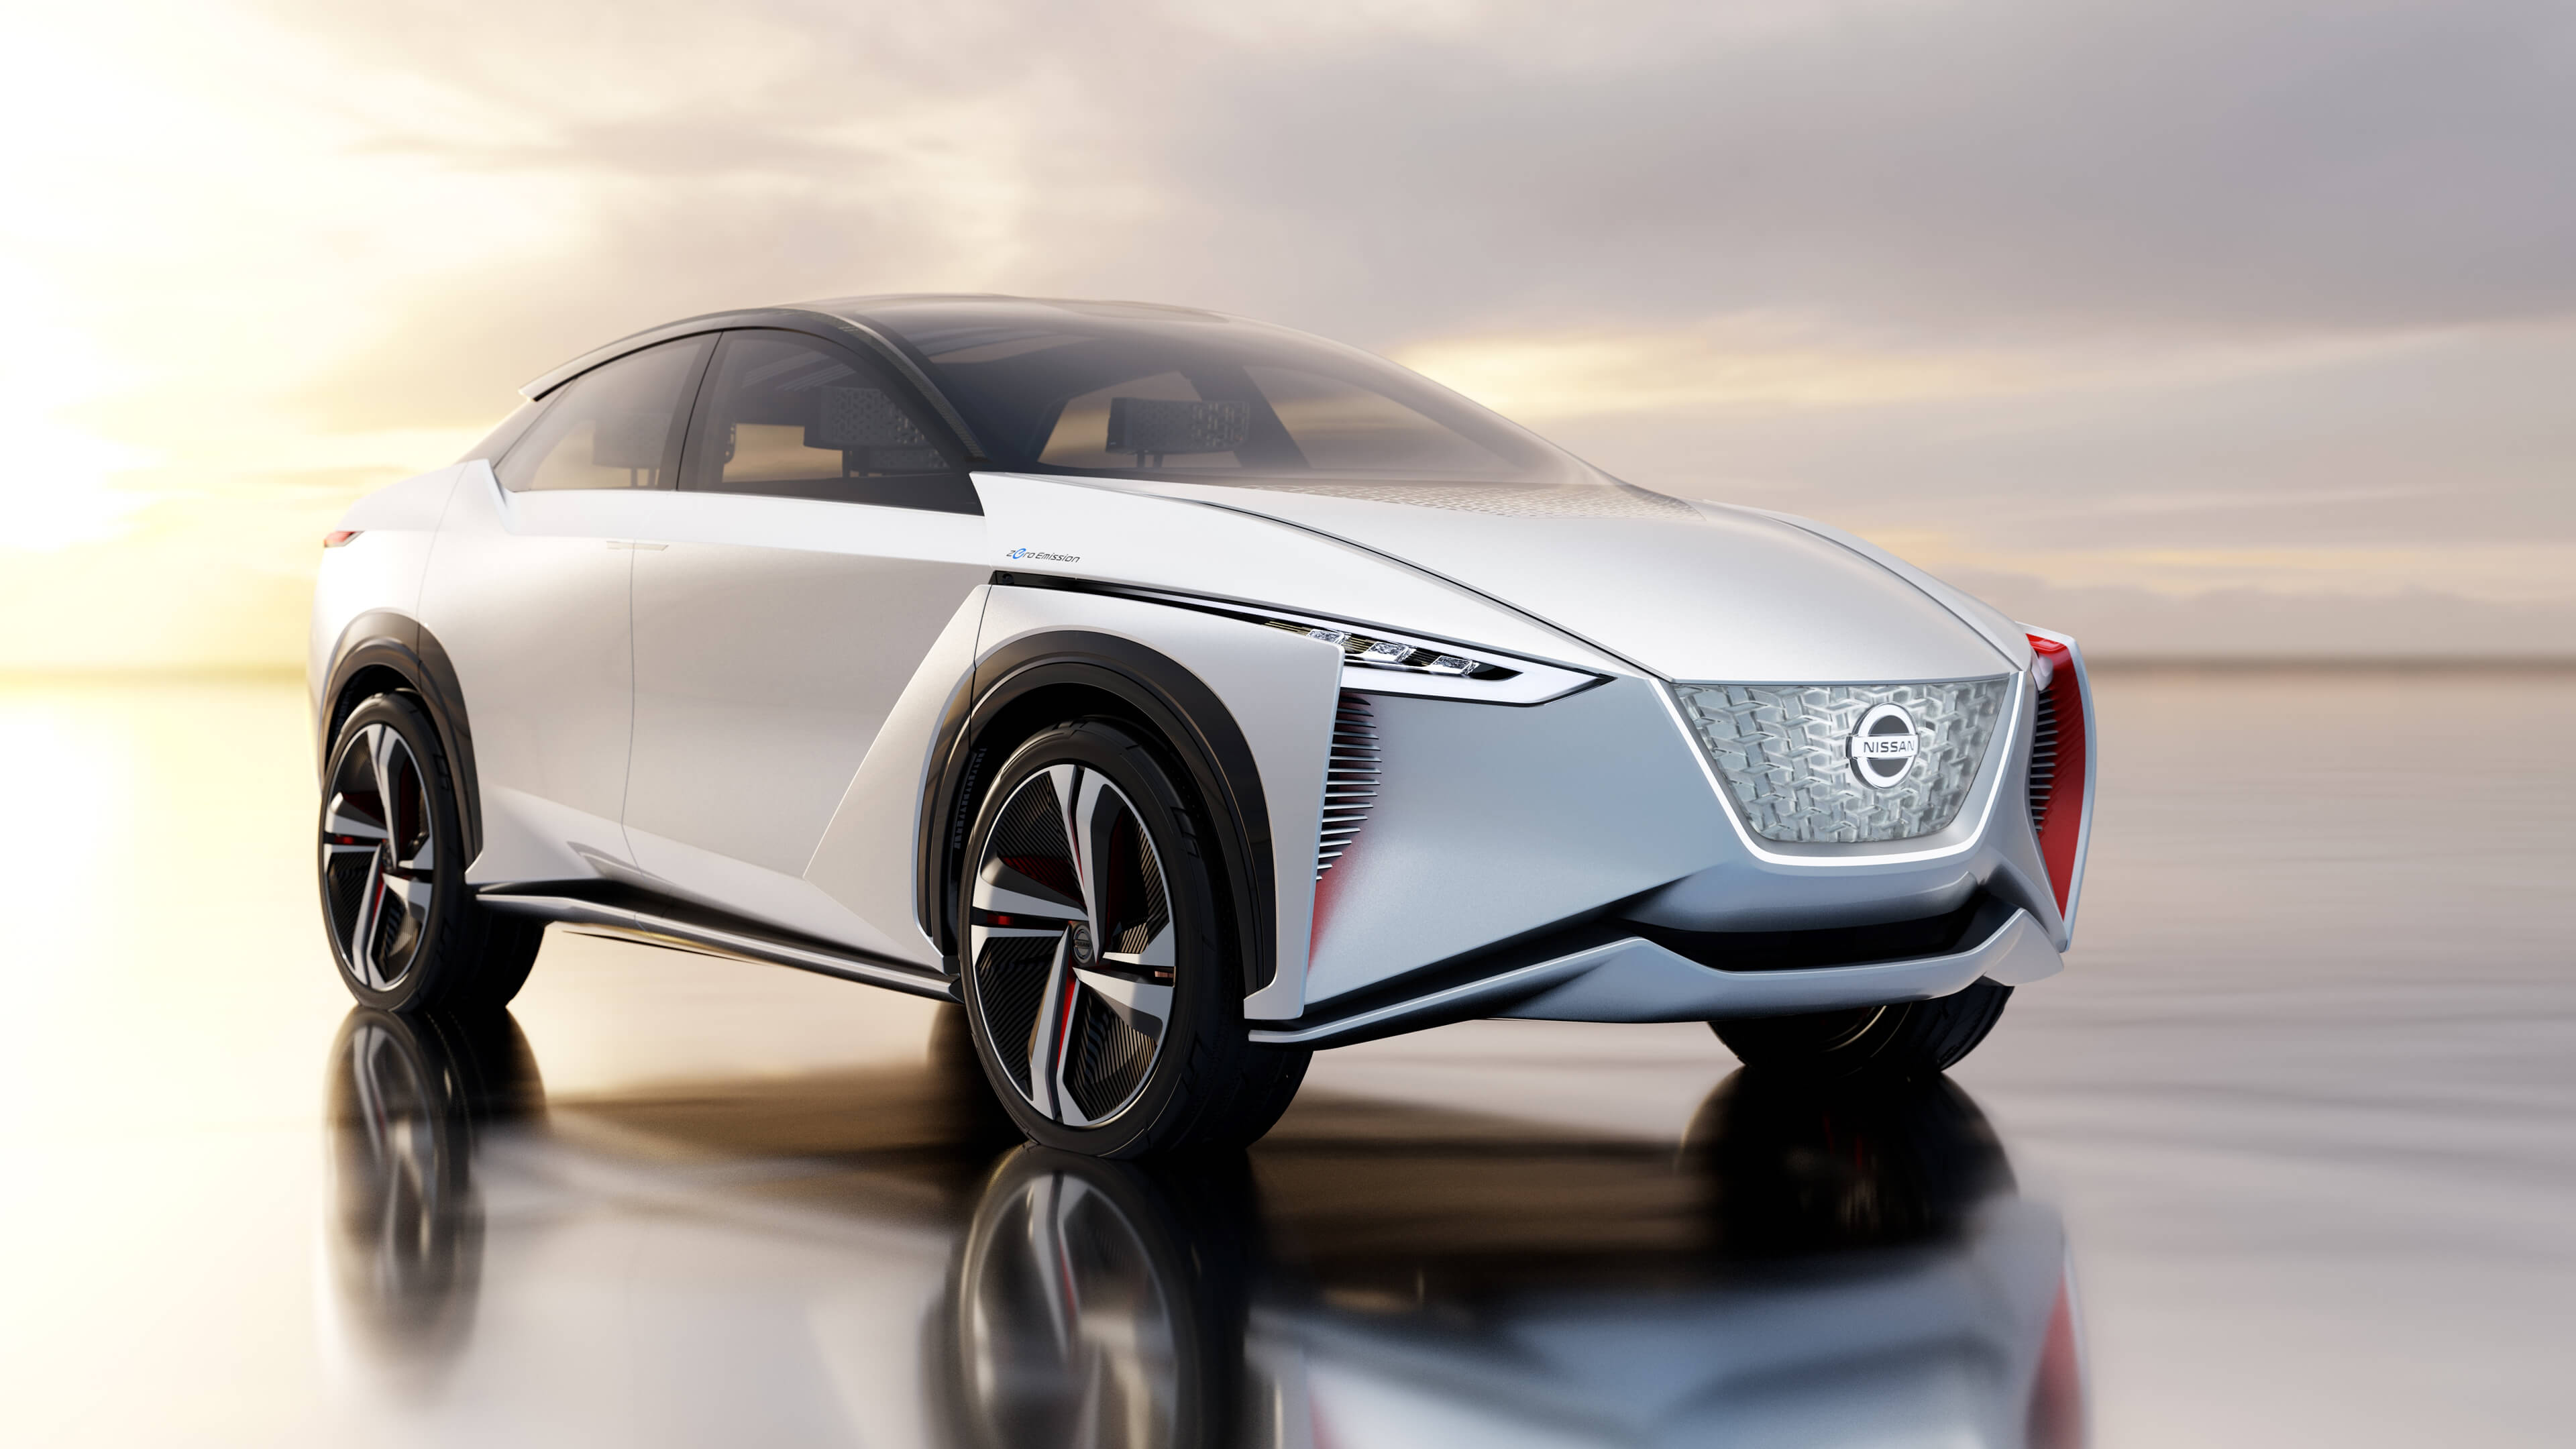 All-electric Nissan IMx SUV concept unveiled